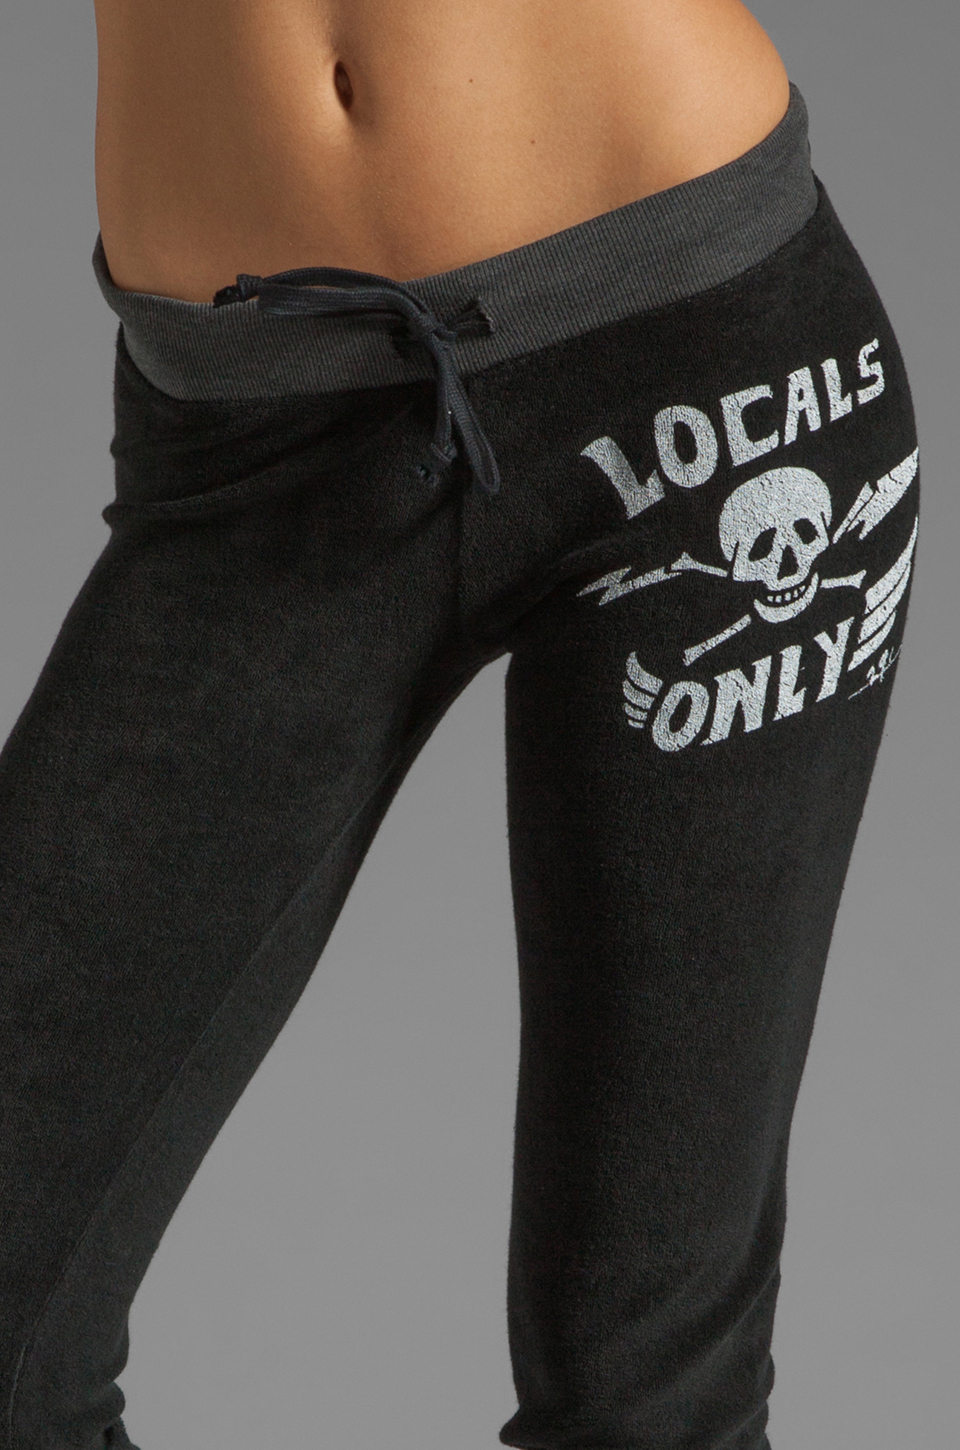 291 Locals Only Track Pant in Vintage Black